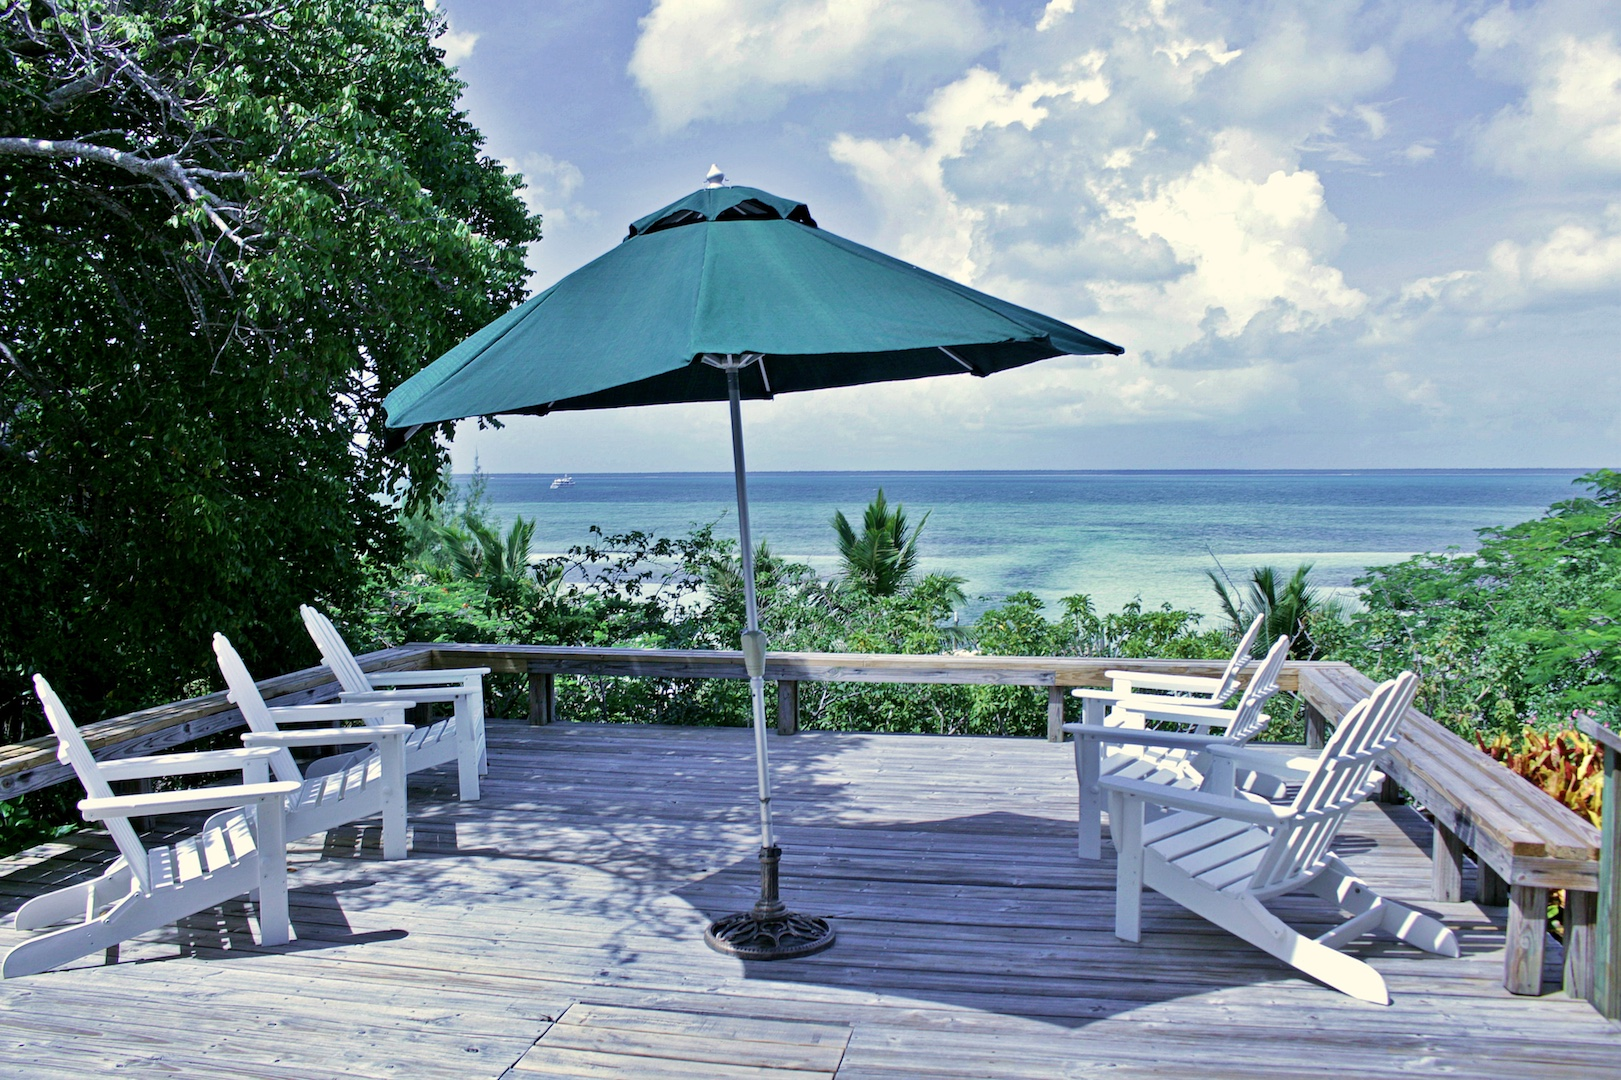 Green Turtle Cay home for sale with sea view